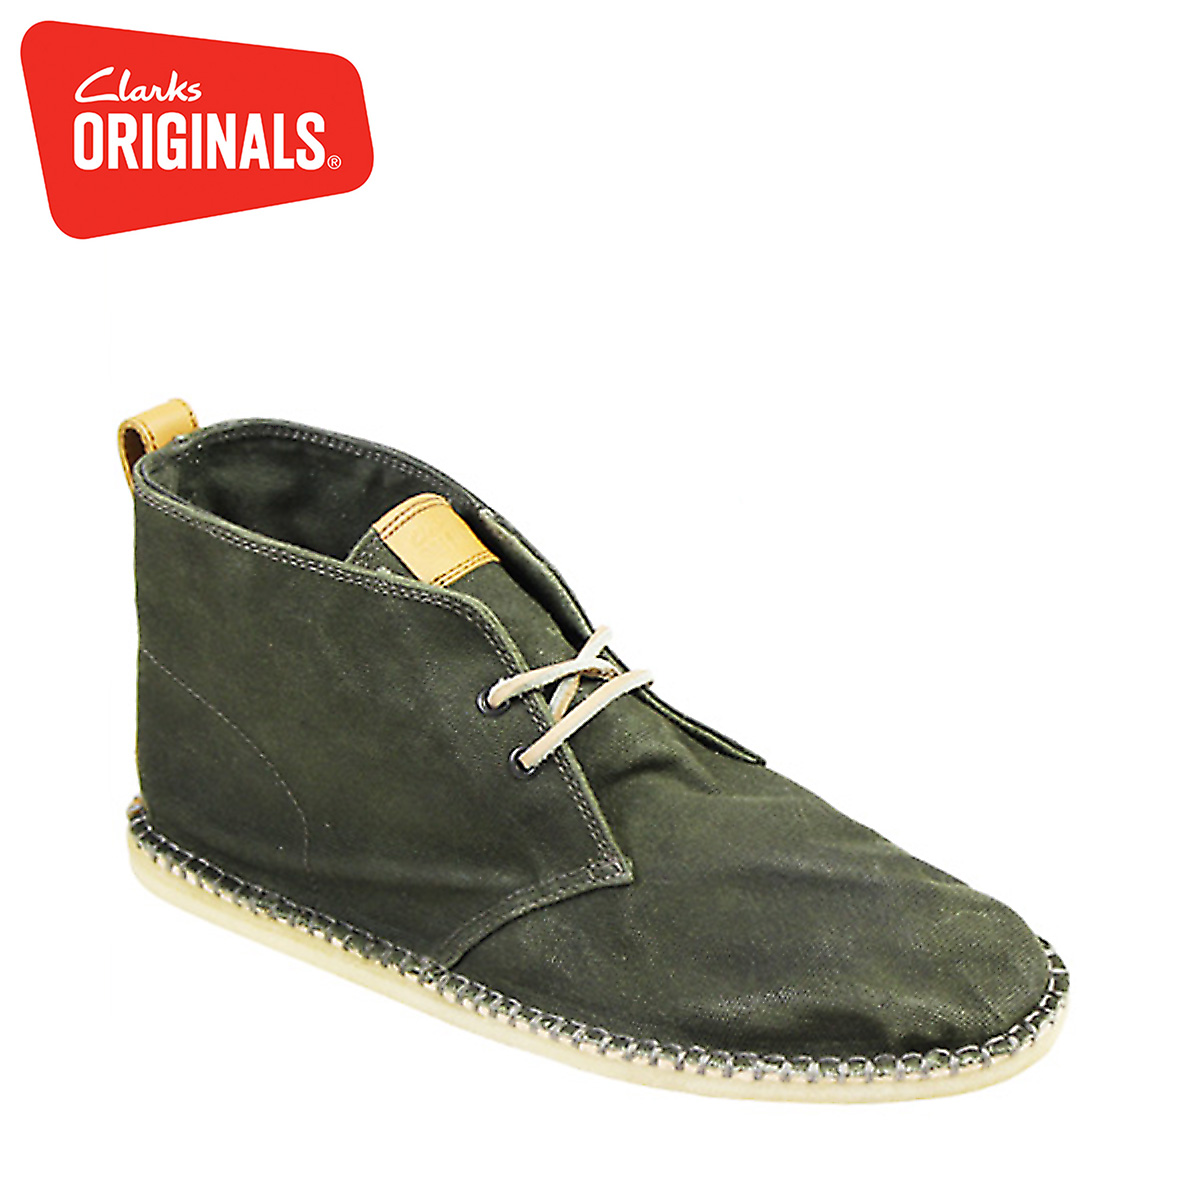 4cdbb99e938e56 The sub-brand stuck to making shoes always cherished the original founder  of soul, also said the backbone of the Clarks.